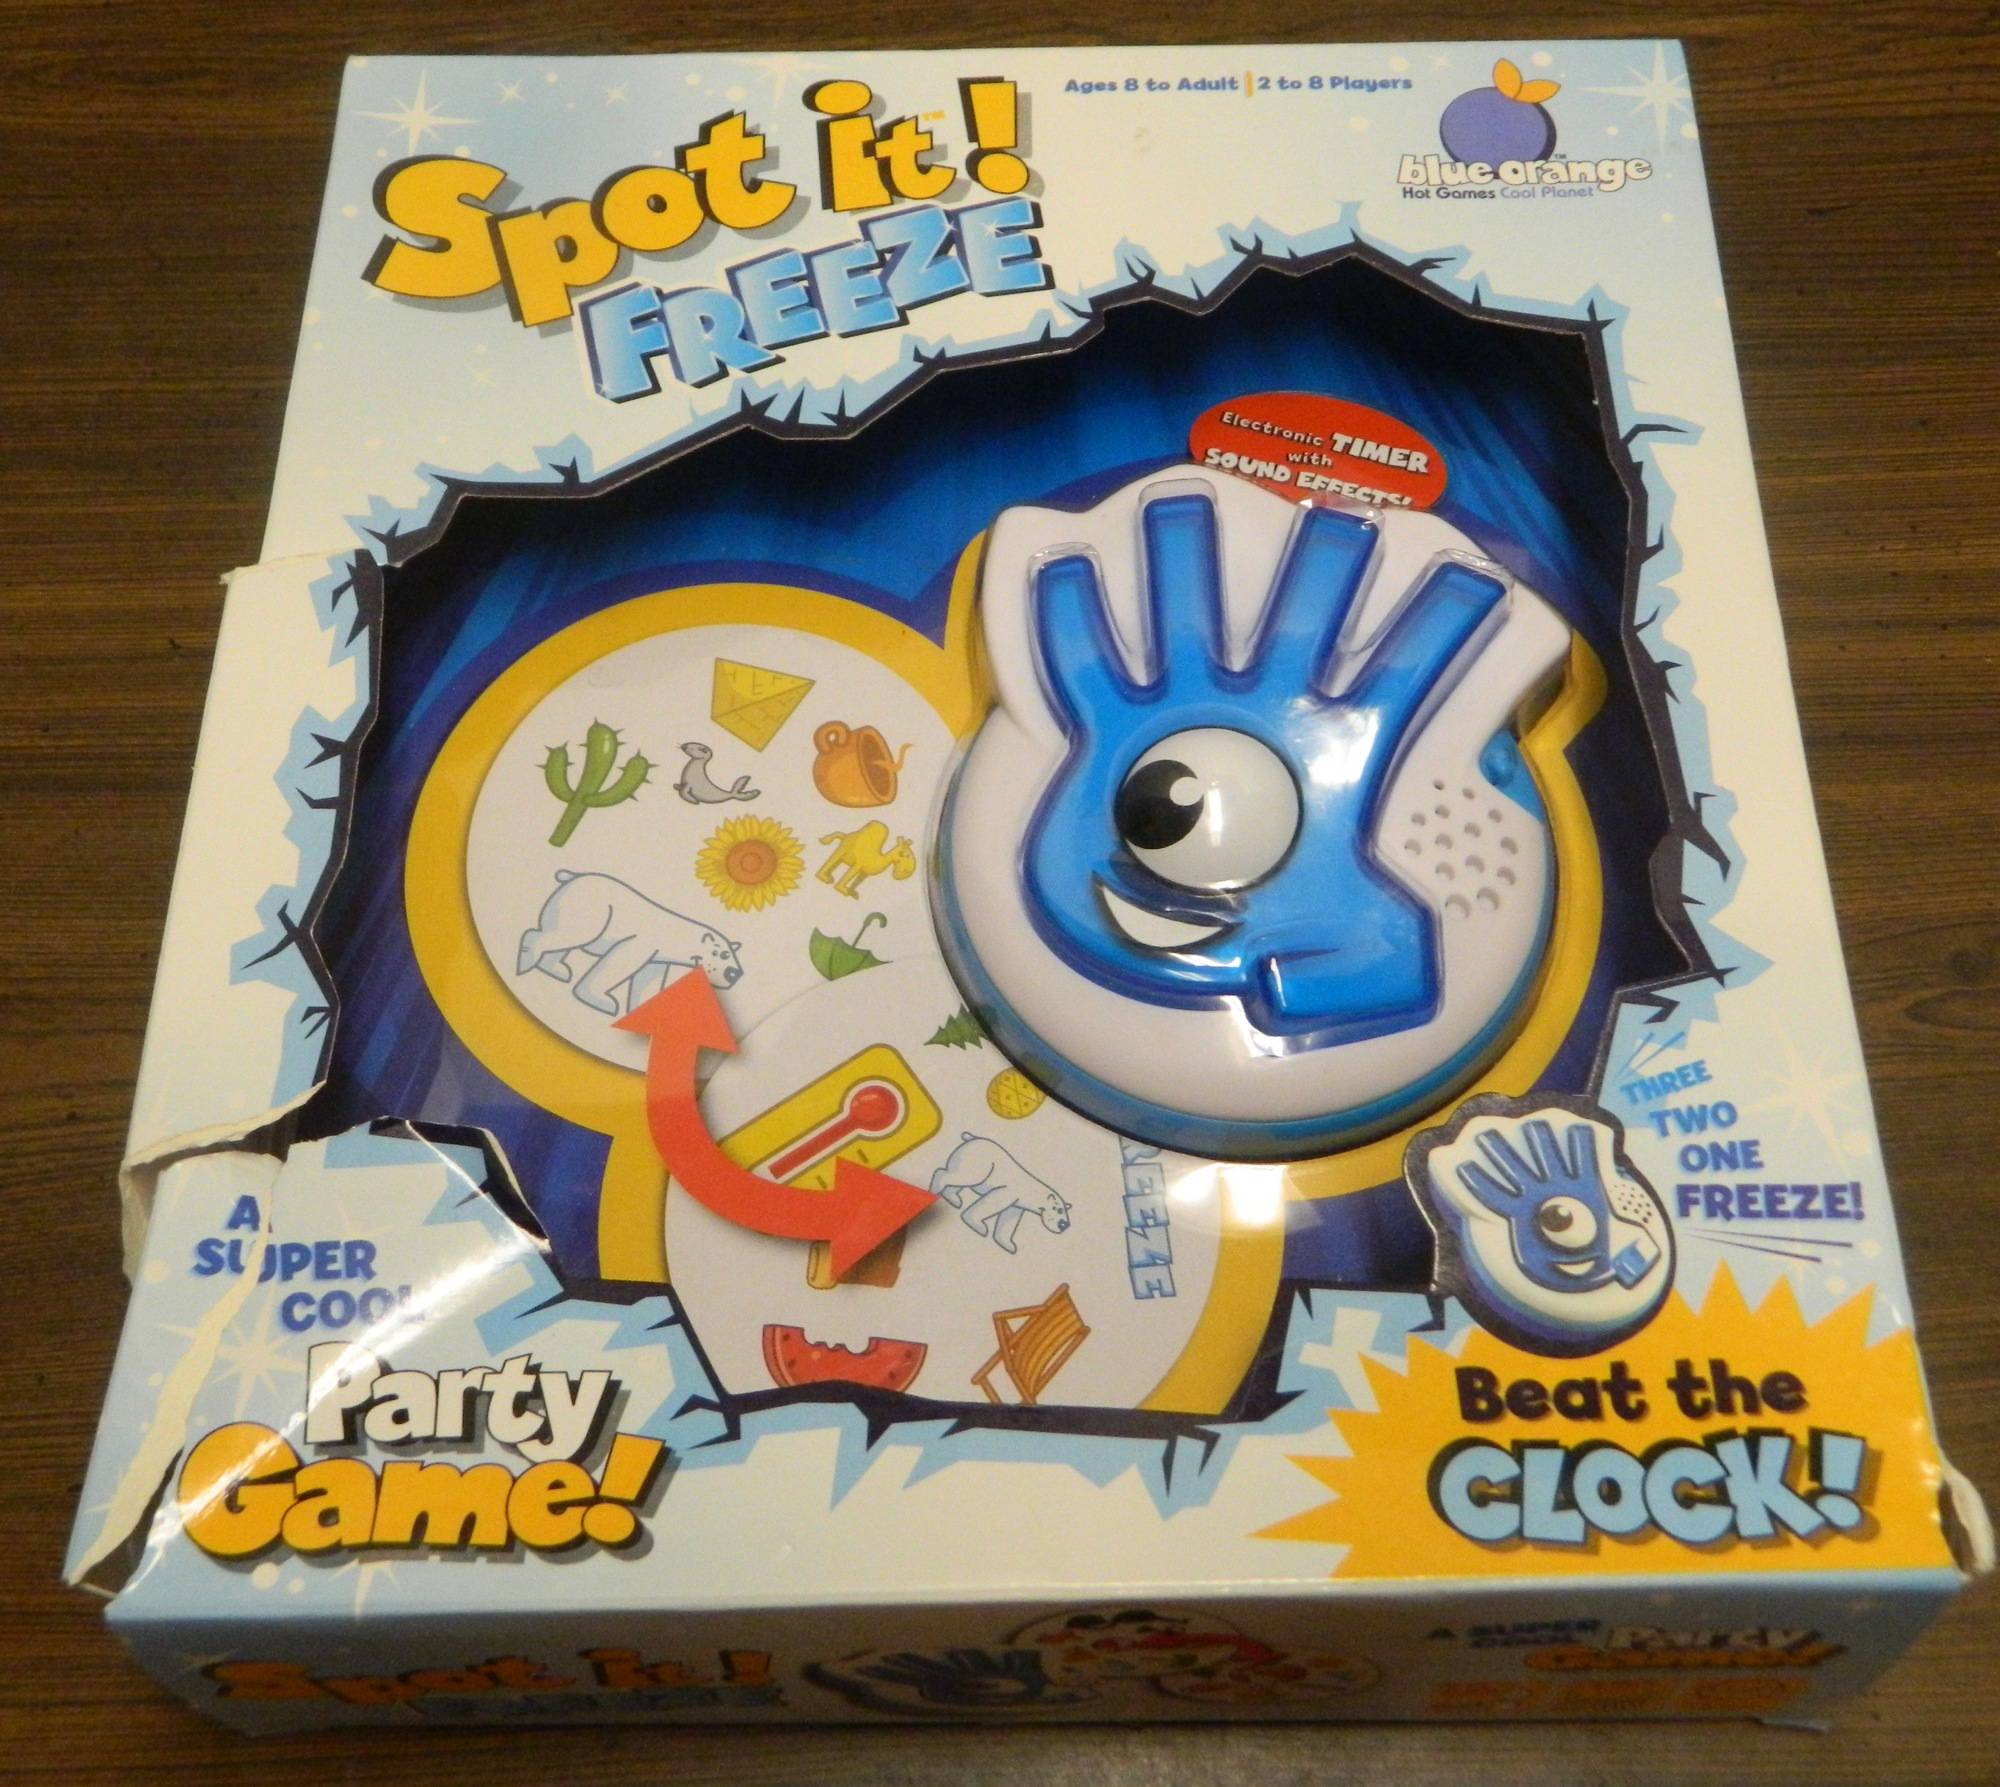 Box for Spot it! Freeze